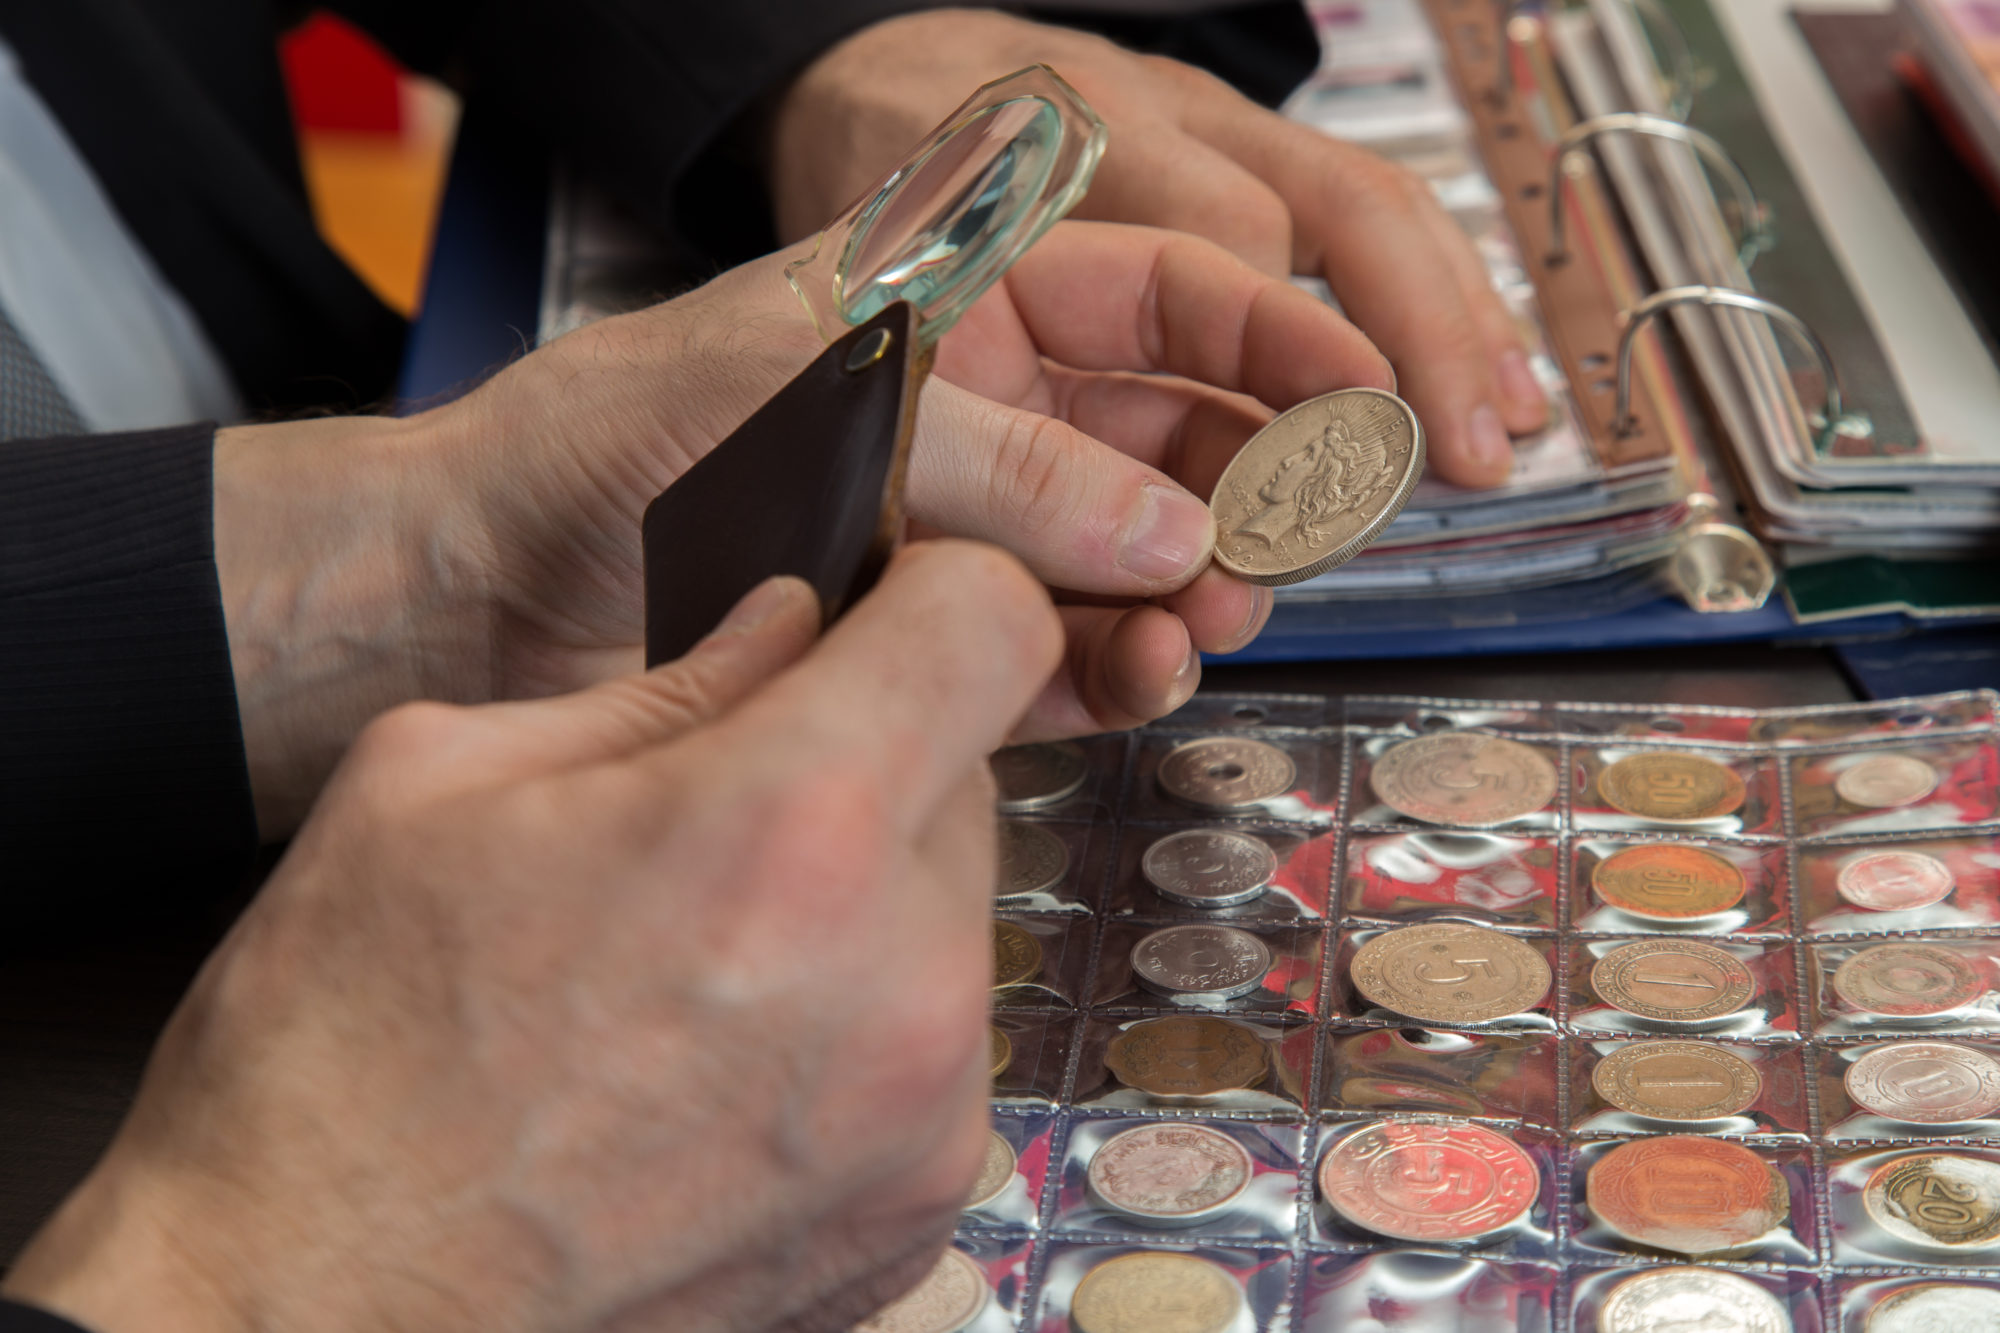 Coin collectors inspecting coins